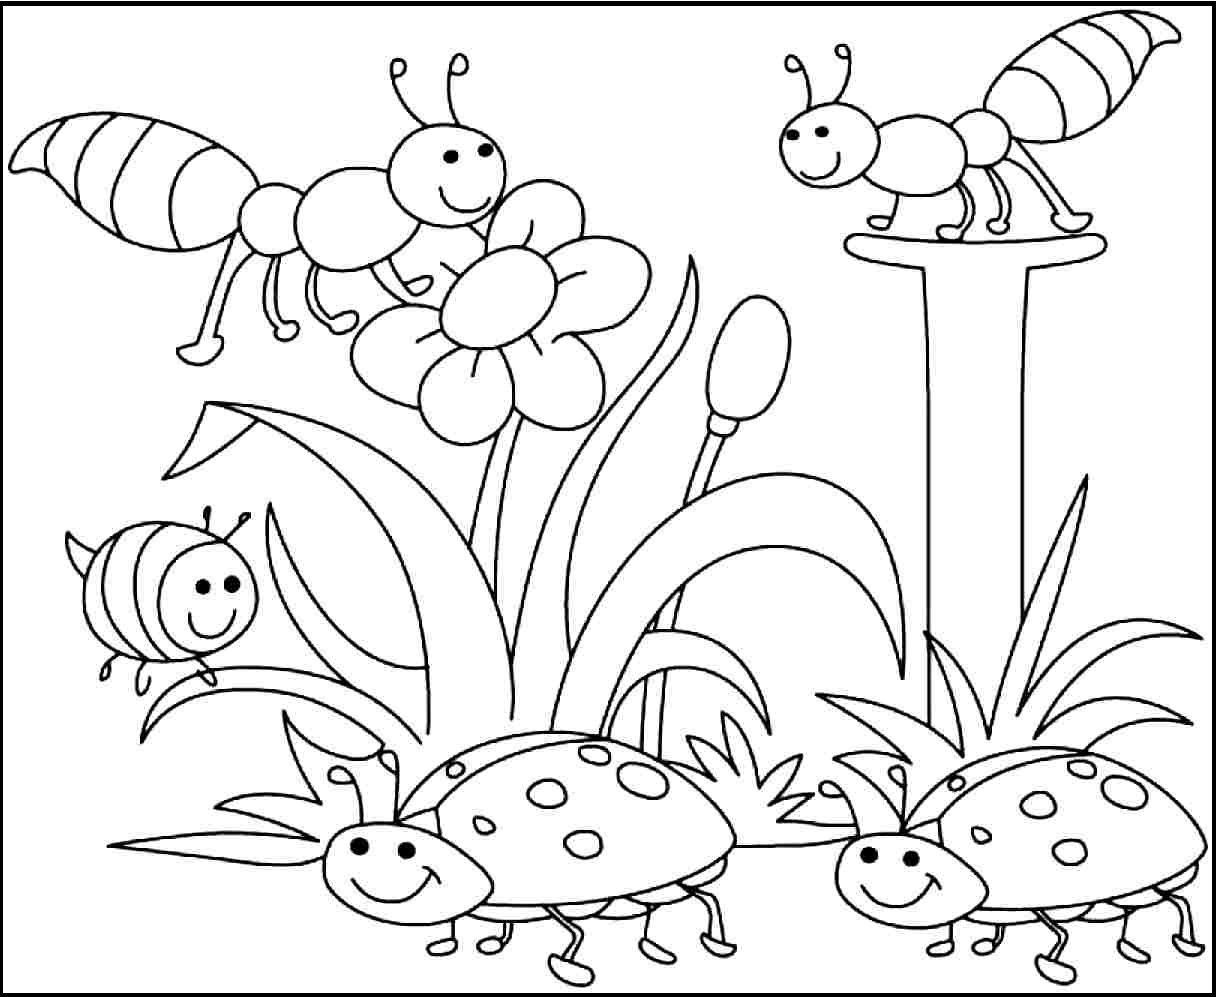 free printable spring coloring pages - free printable spring coloring pages kids coloring page for kids spring coloring pages printable activities spring coloring pages printable pdf